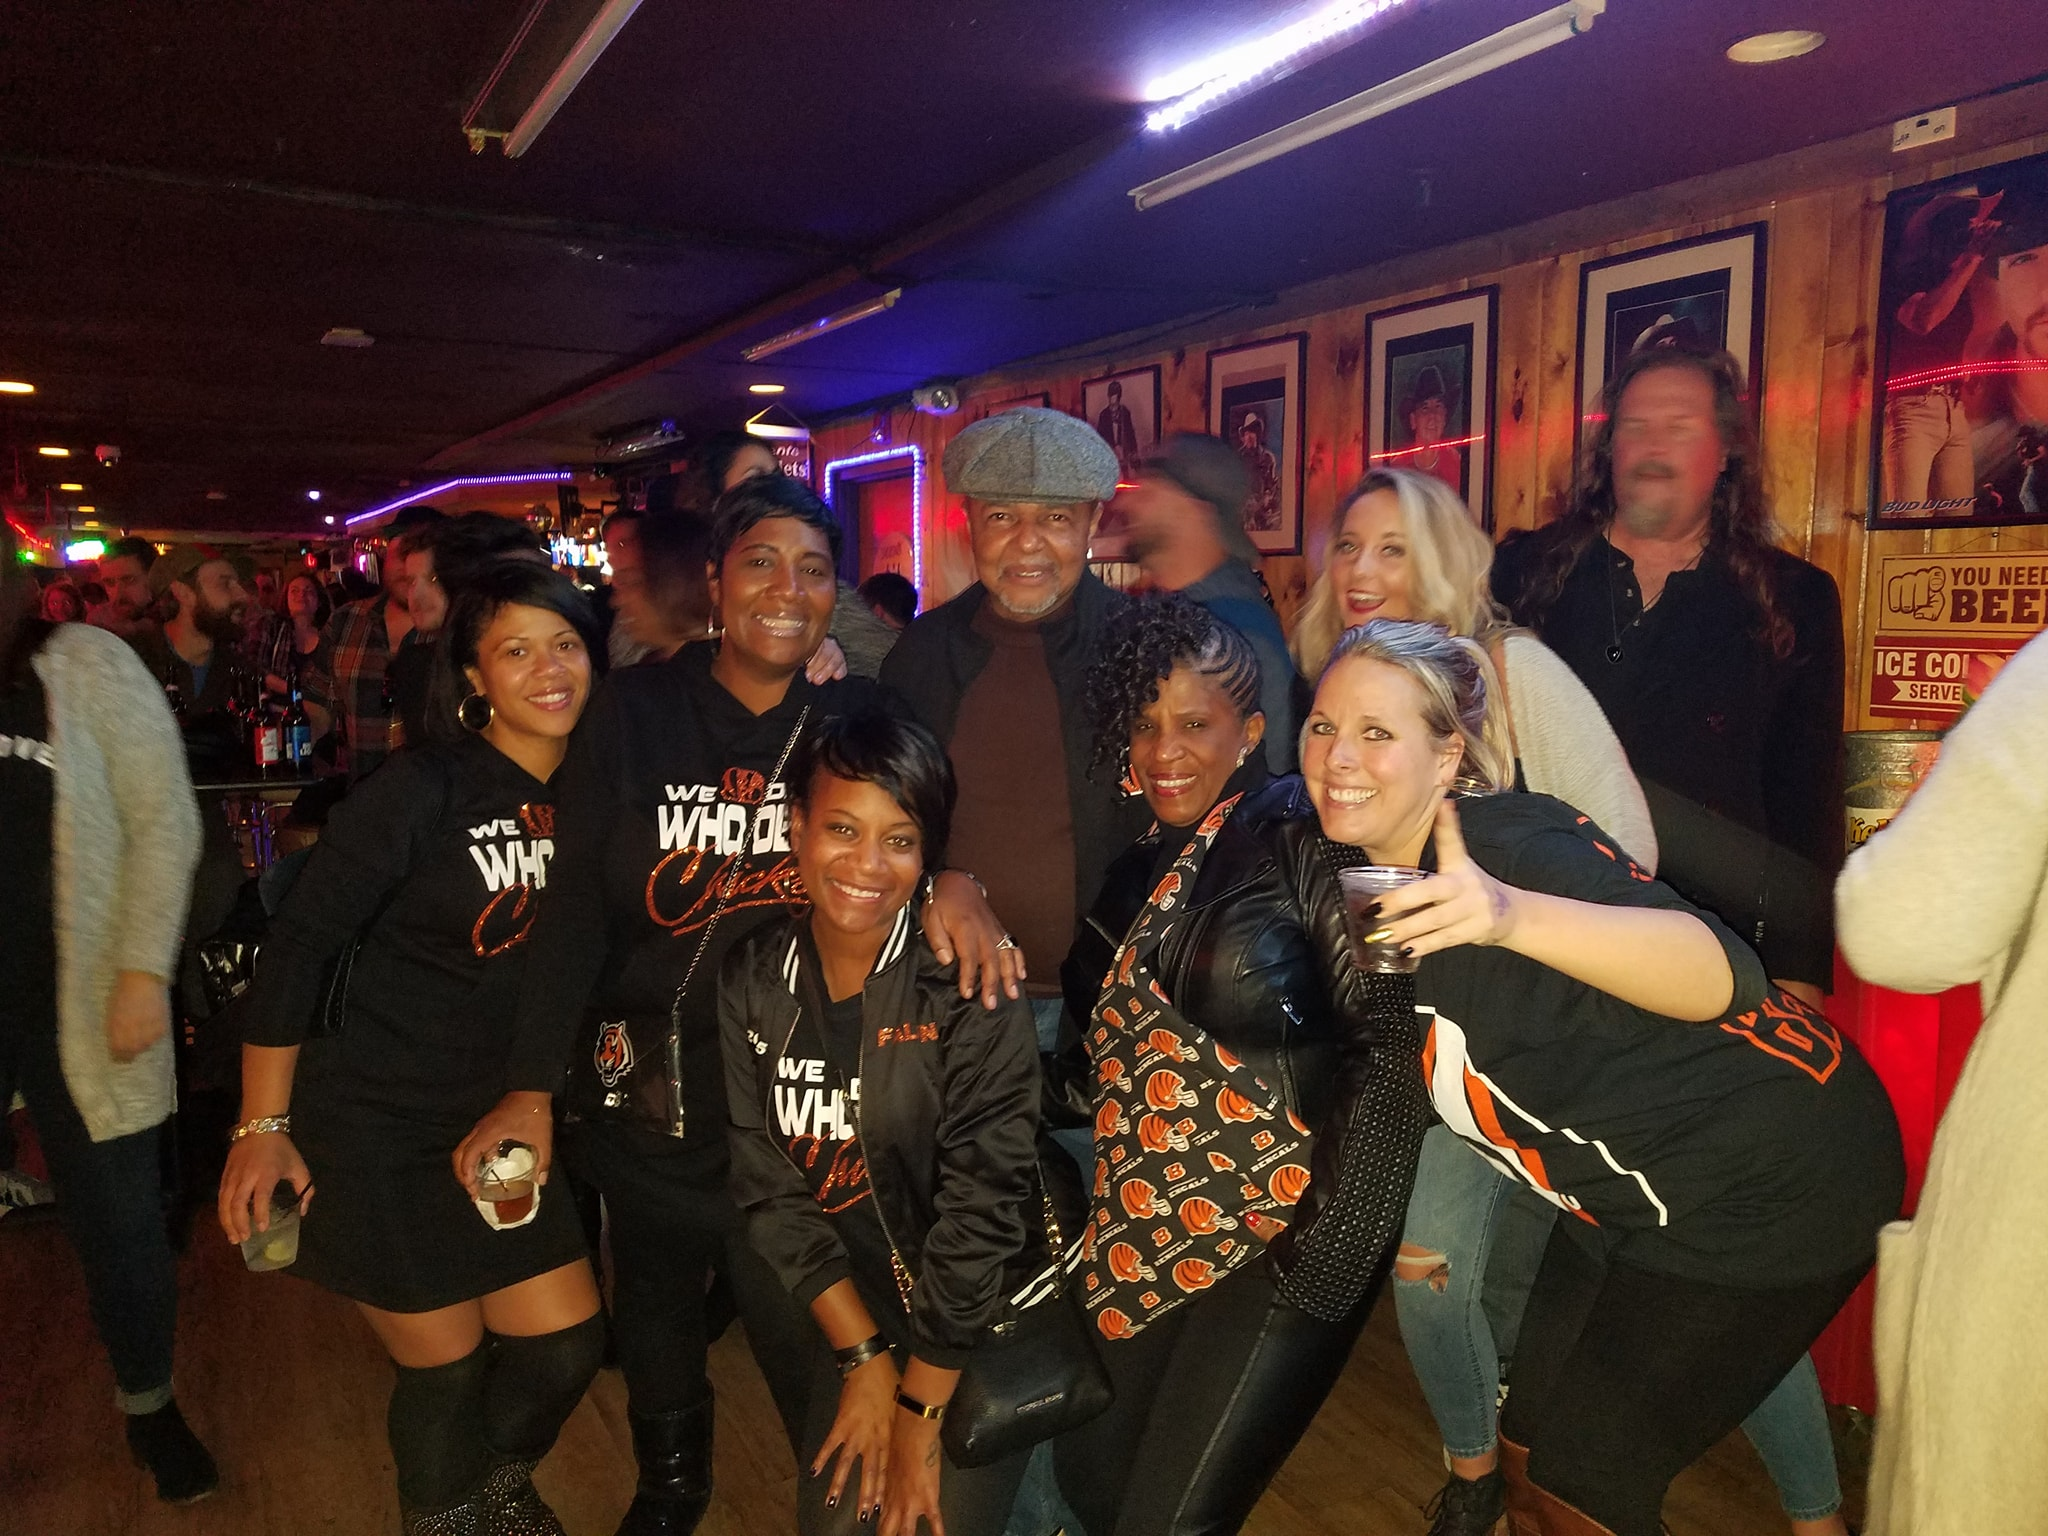 Who Dey Chicks with local radio personality Lincoln Ware and his wife Pat.